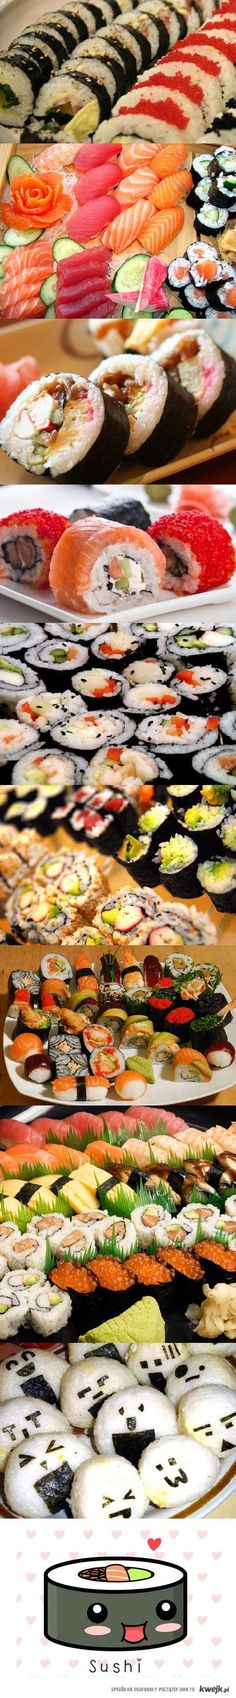 Sushi forever <3 I want it all!! :)